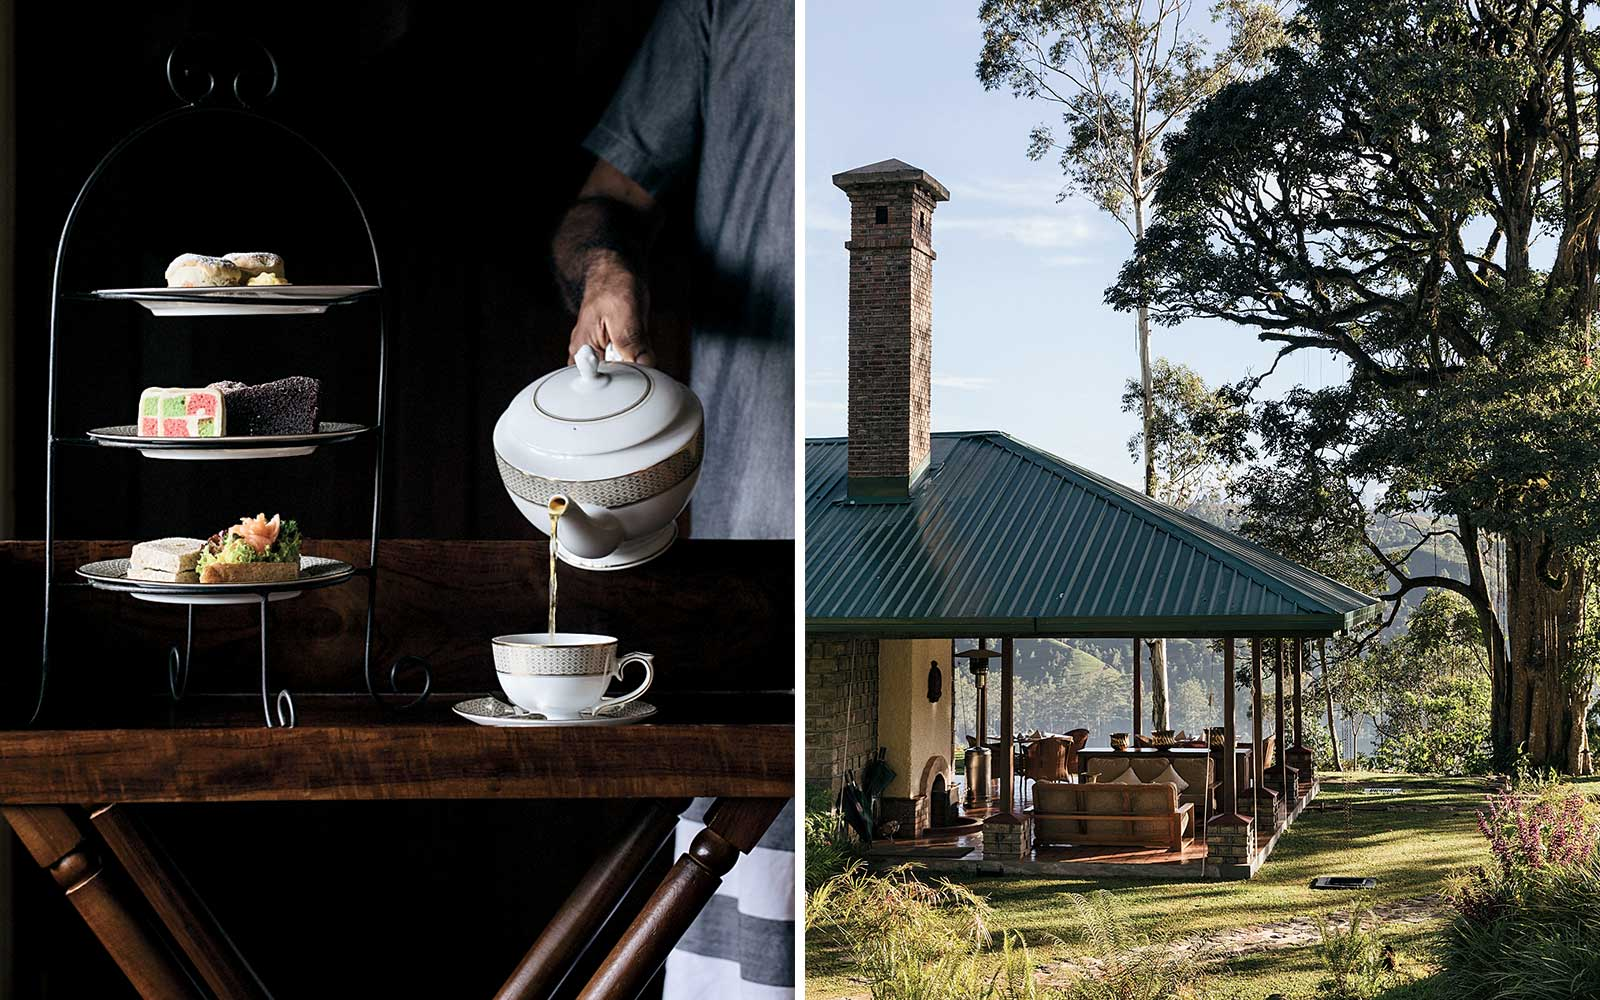 Tea service at Ceylon Tea Trails, and Dunkeld Bungalow